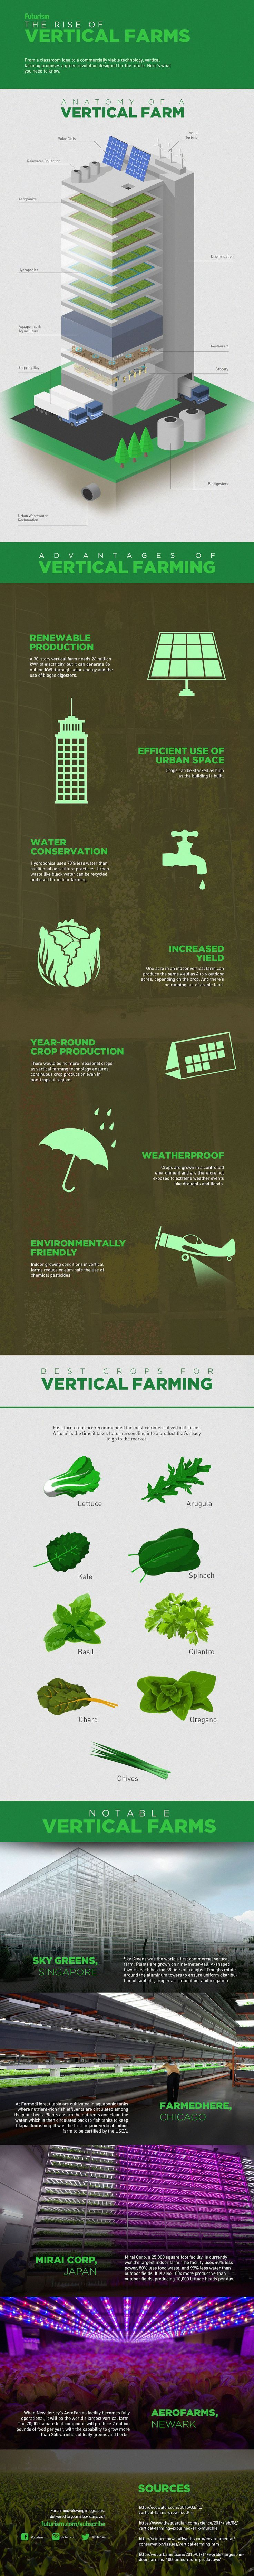 Check out Vertical Farming For Compact Spaces   Types of Farming at http://pioneersettler.com/vertical-farming/